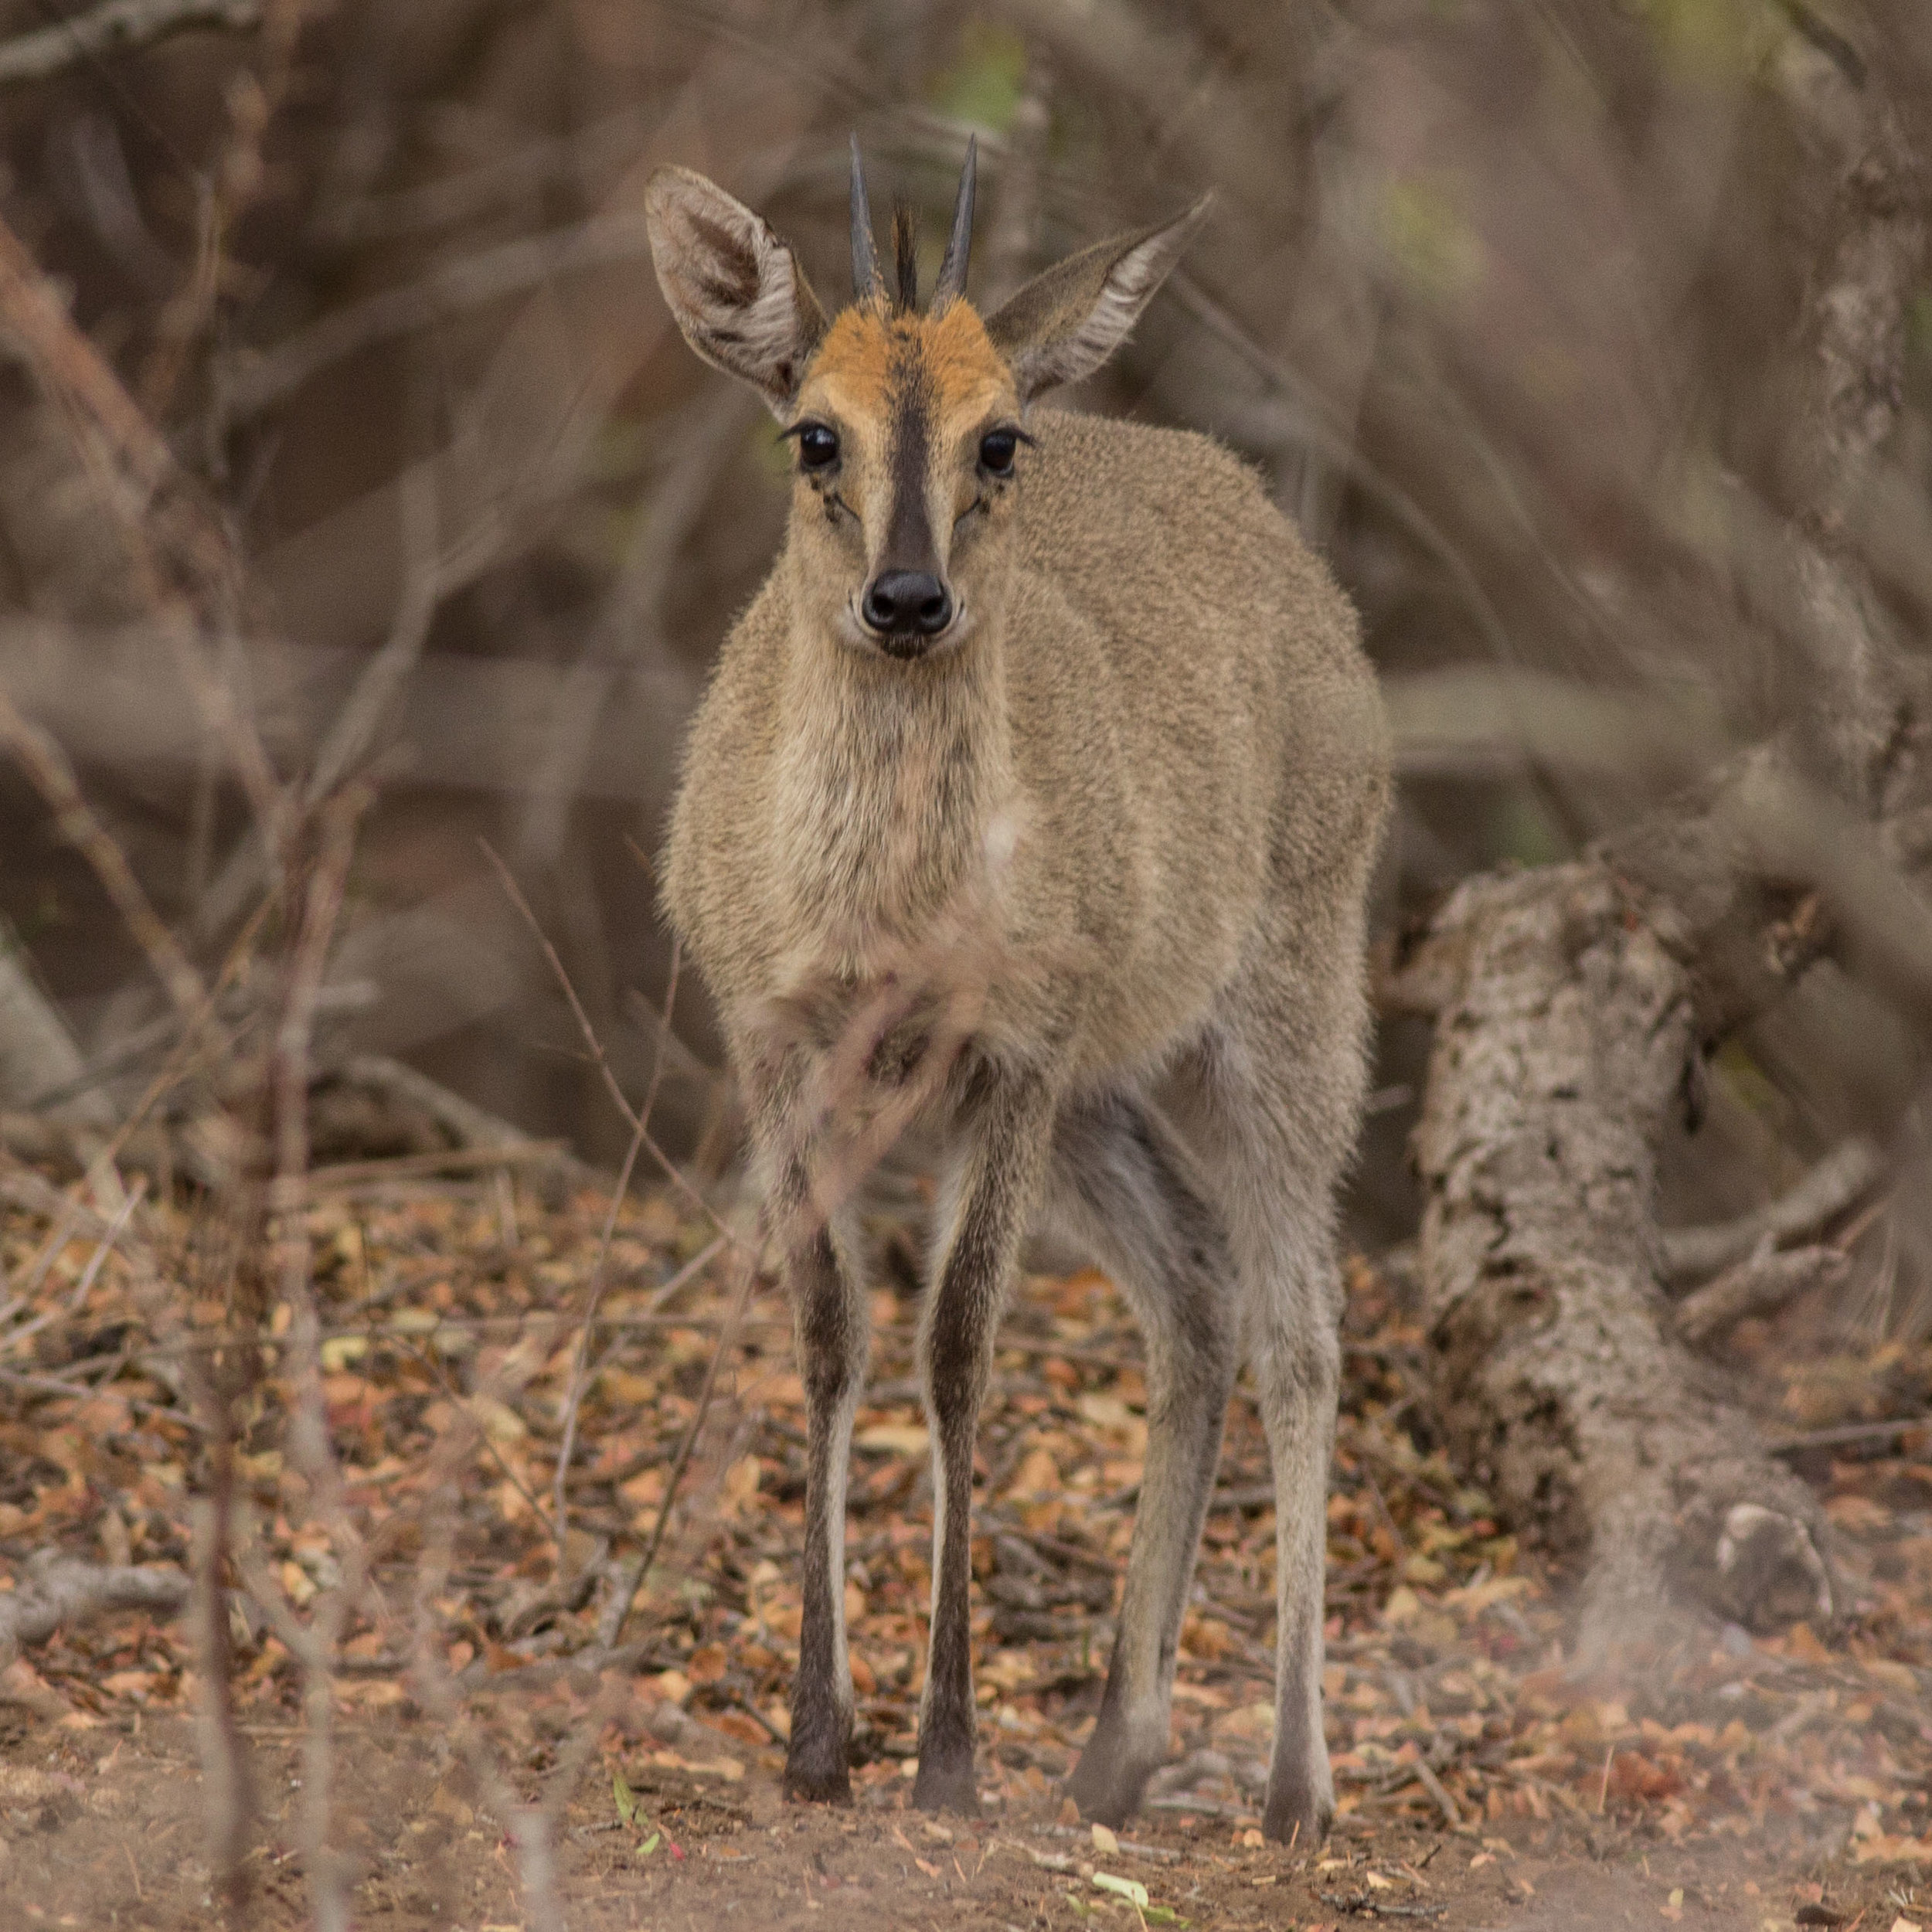 An adult male duiker pauses briefly before running into the thickets.